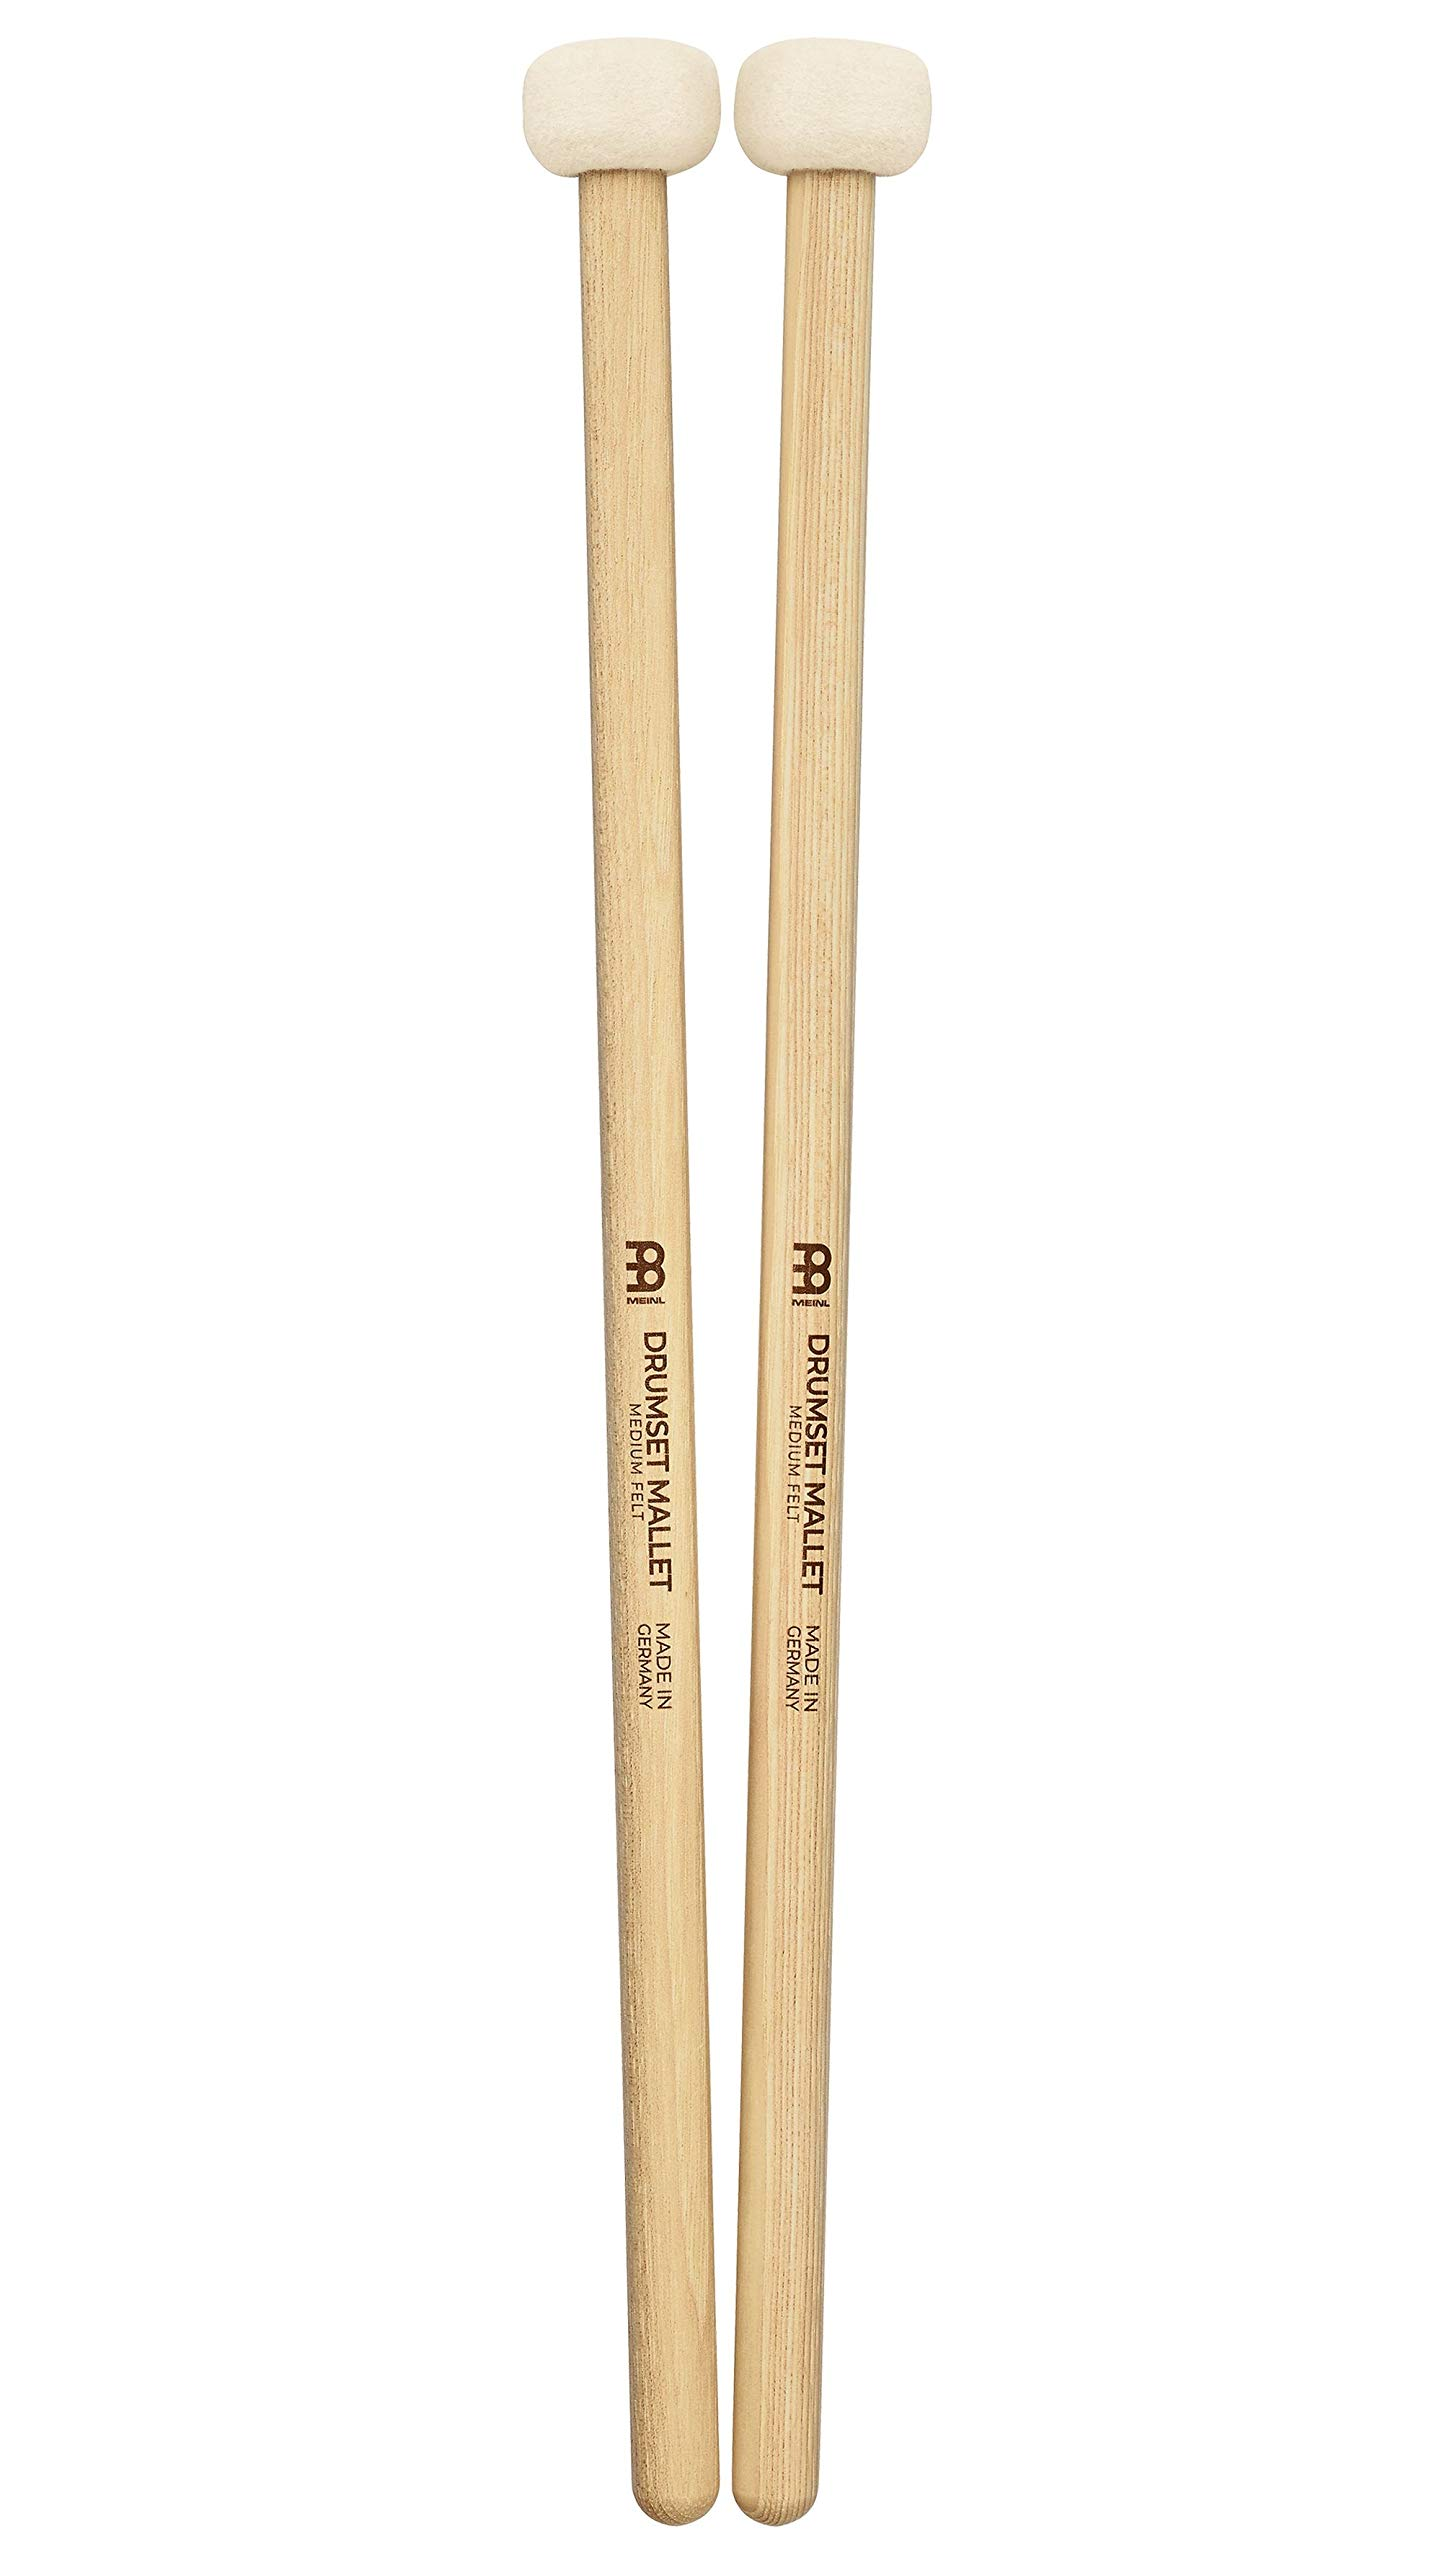 Meinl Stick & Brush Drum Set Mallets with Medium Soft Felt Head and 5A American Hickory Handle - MADE IN GERMANY SB401 by Meinl Stick & Brush